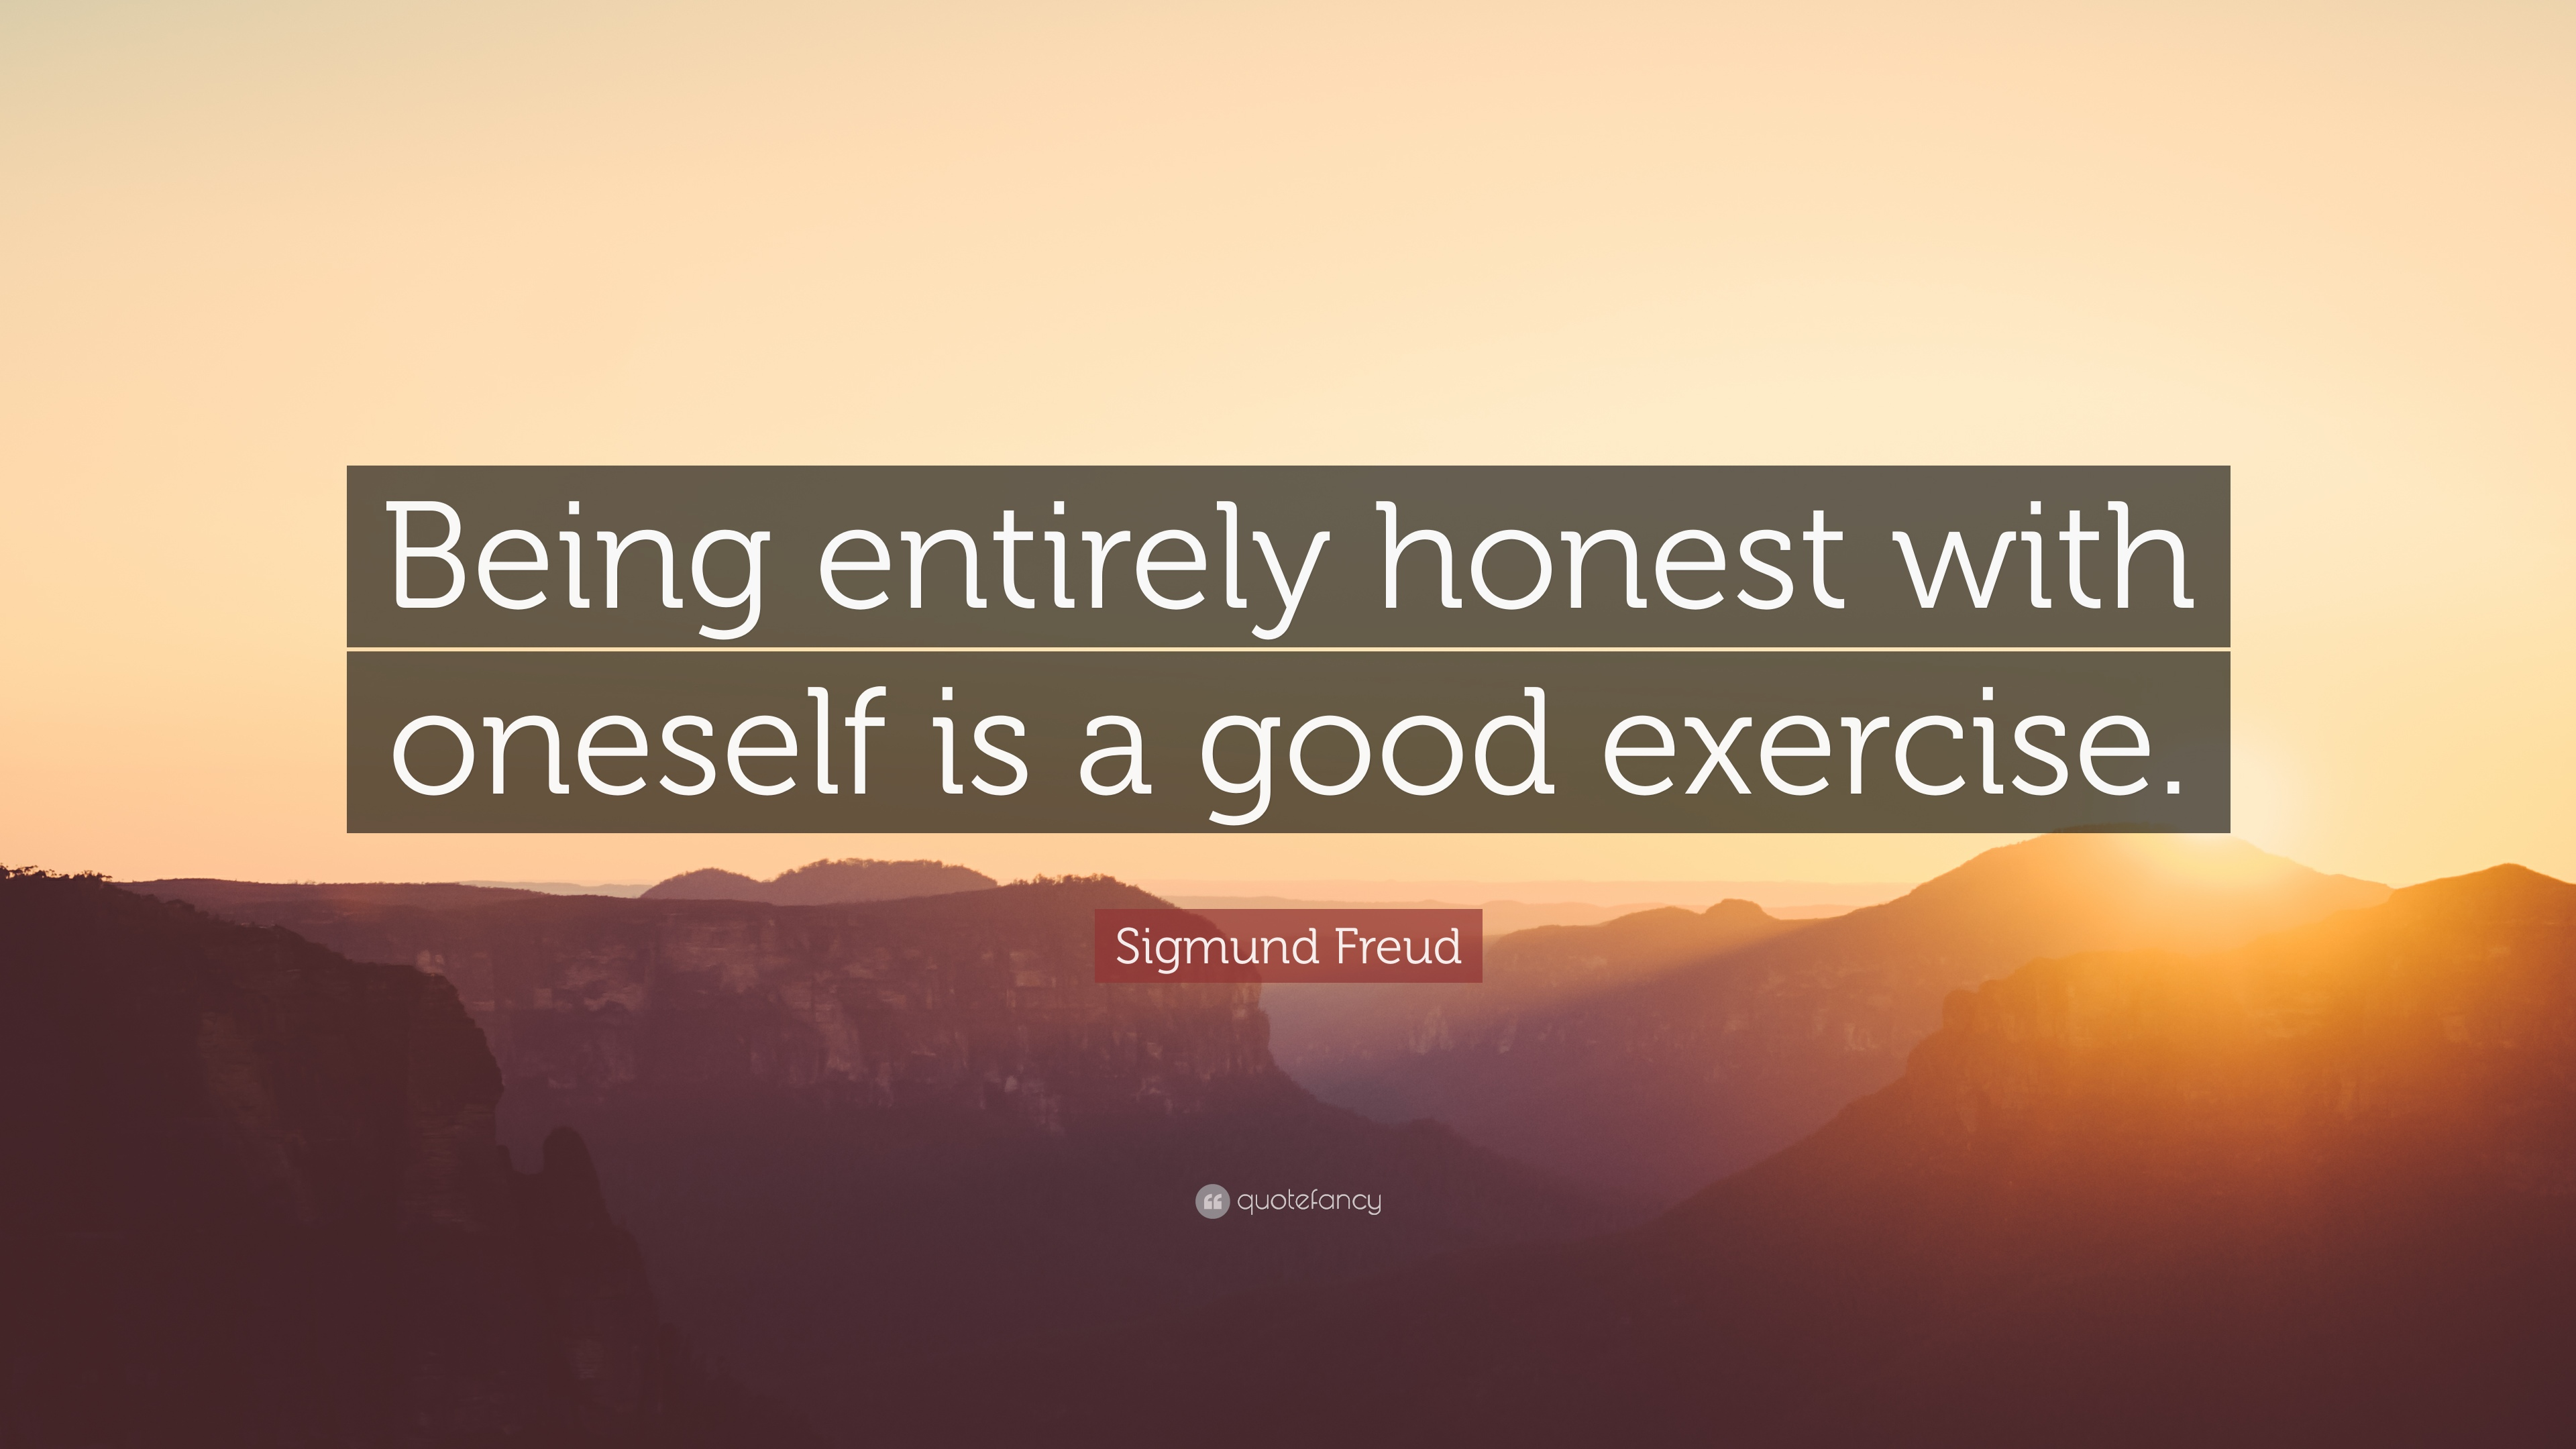 why is being honest good